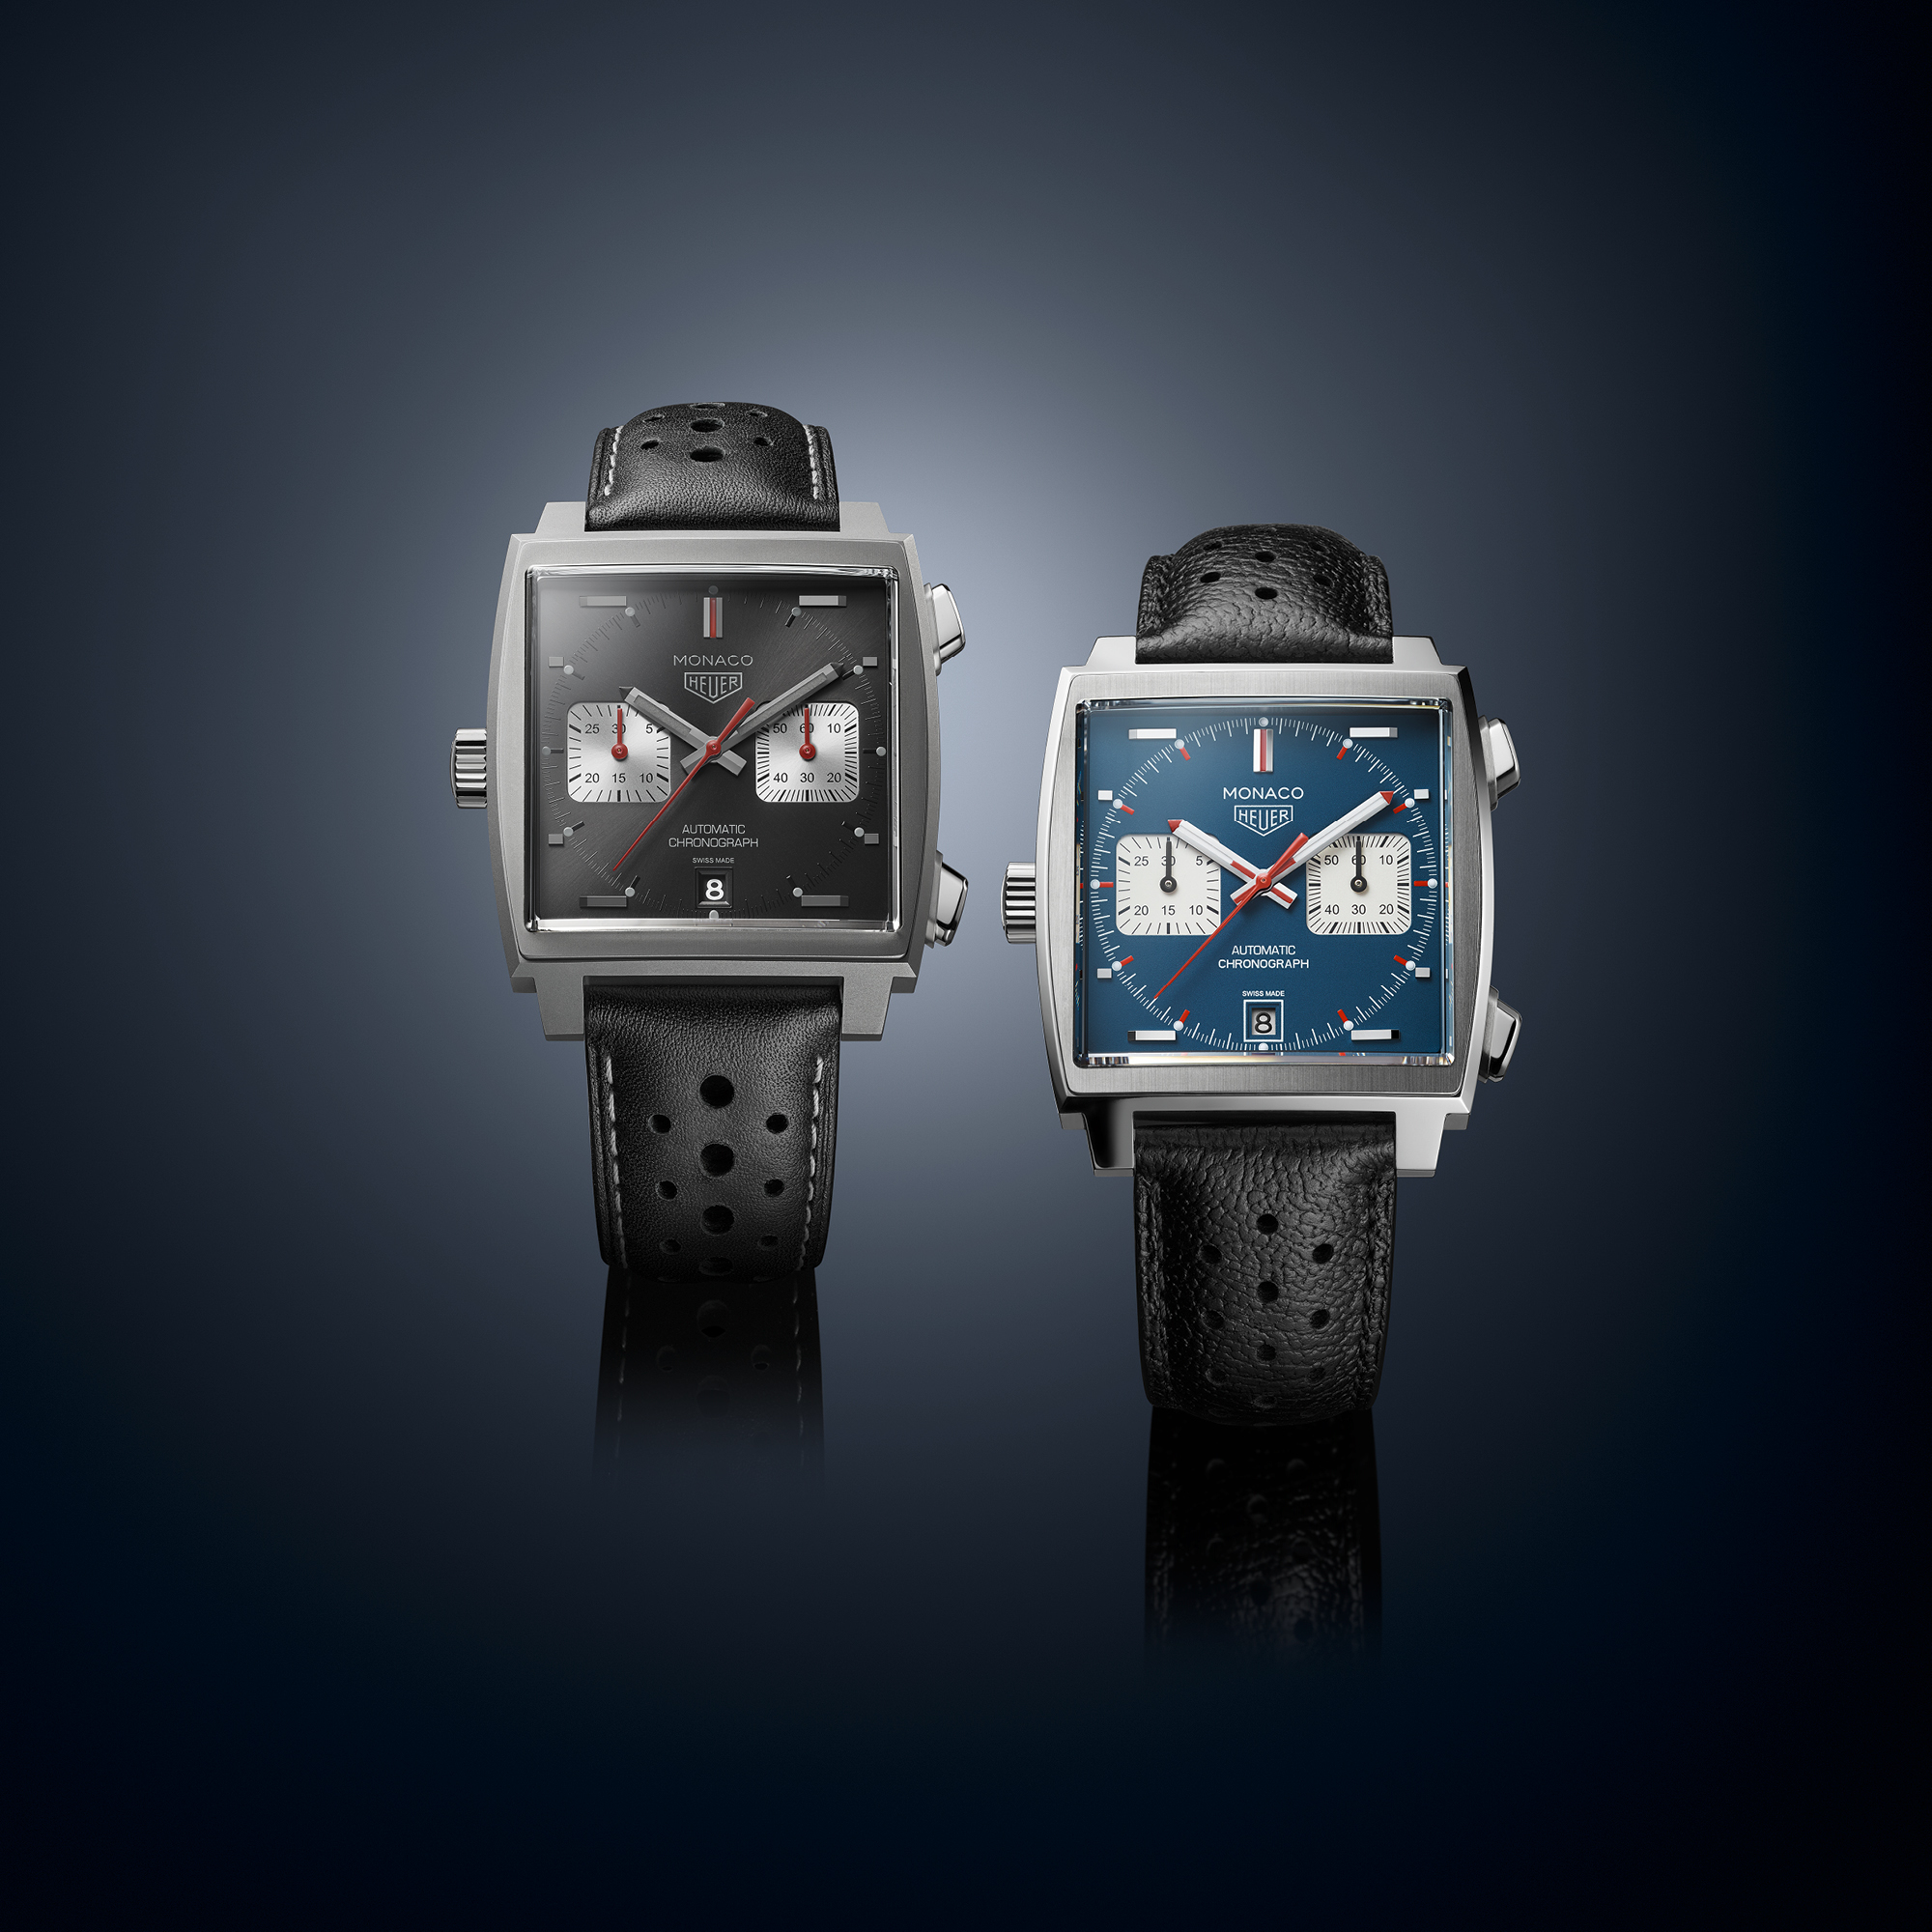 Tag Heuer THROUGH TIME 70'S SEDUCTION DUO 2019